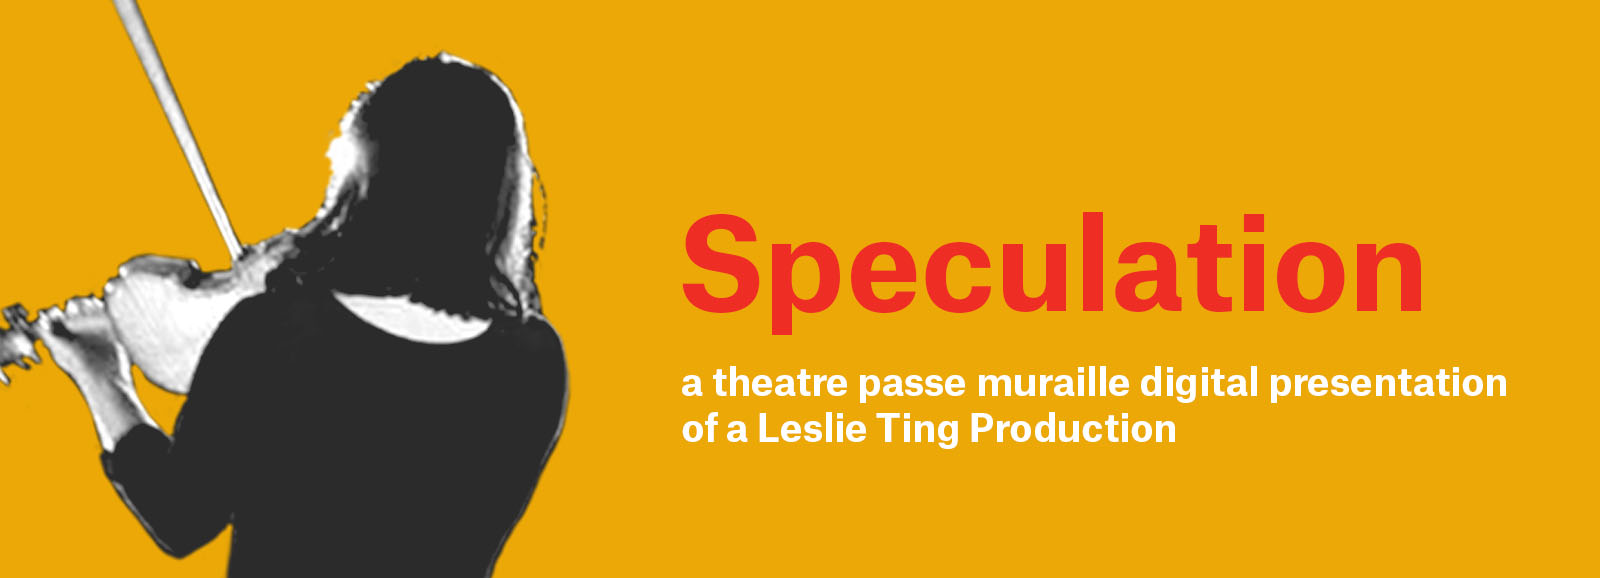 Speculation a theatre pass muraille digital presentation of a Leslie Ting production